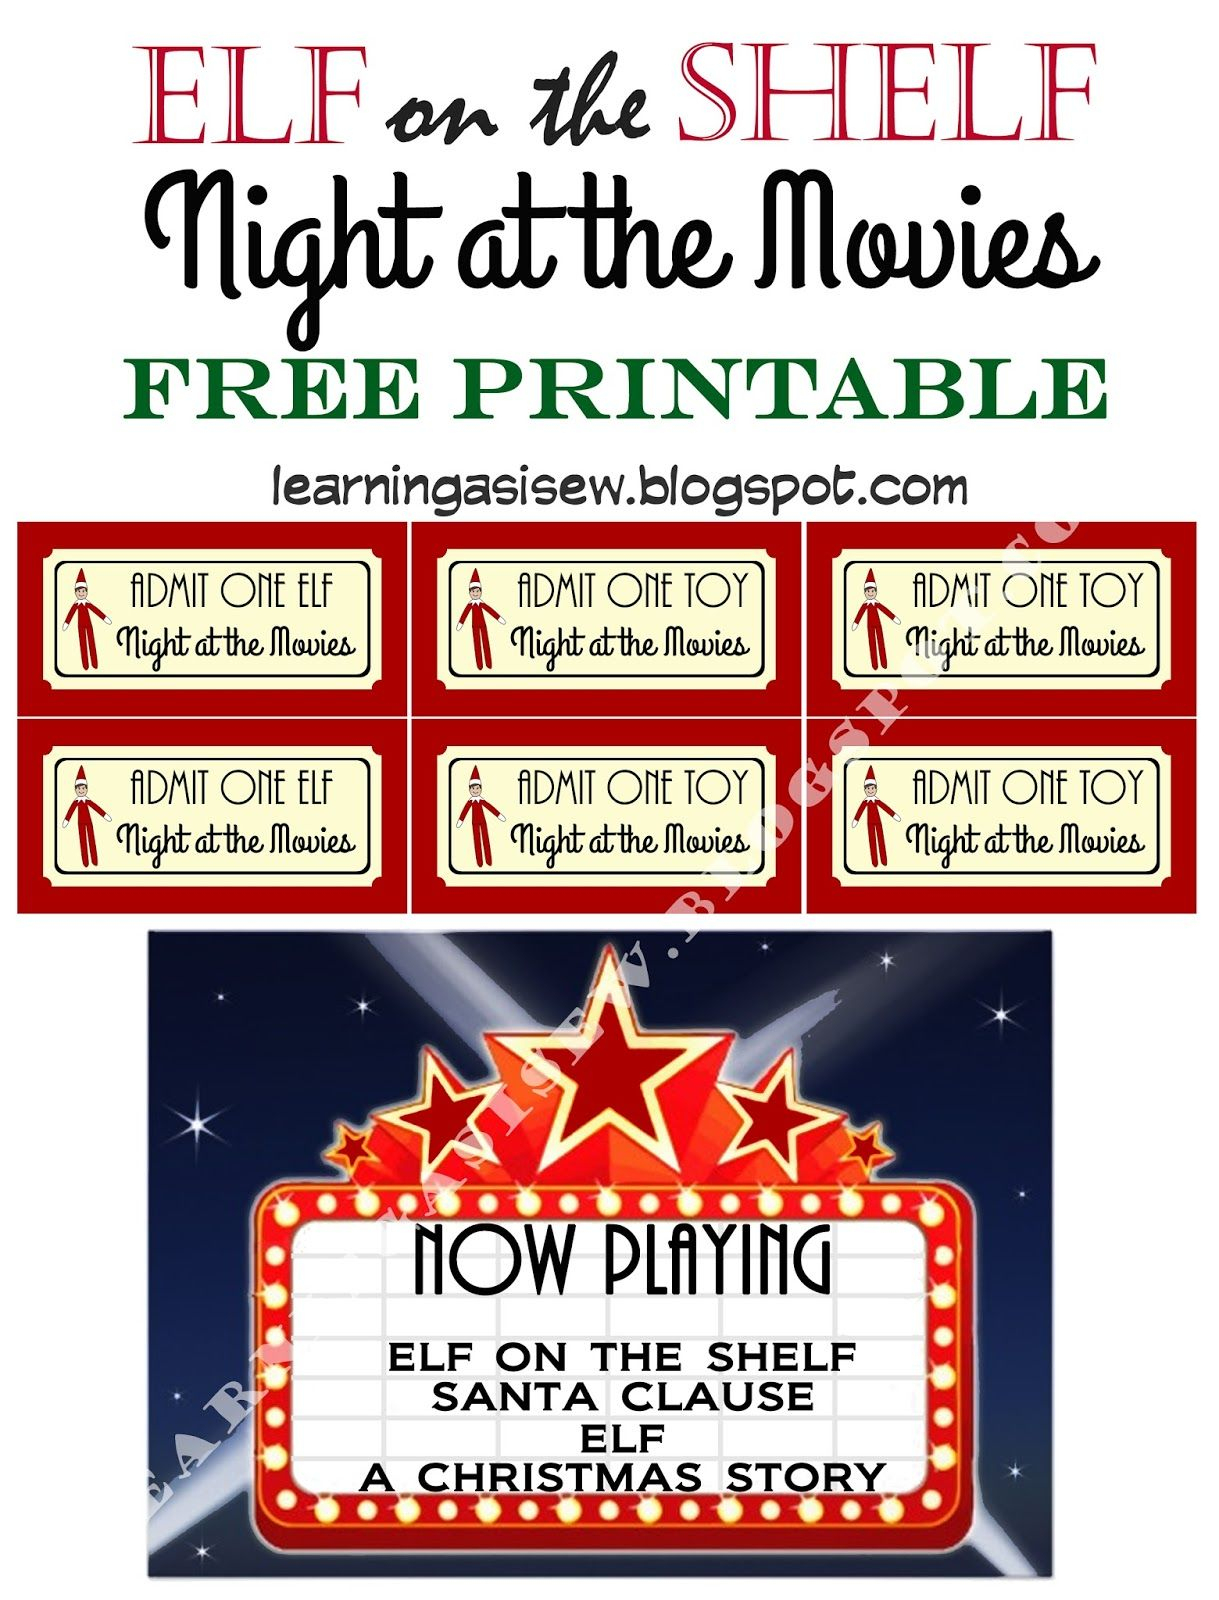 Elf On The Shelf Free Printable - Night At The Movies, Printable - Free Printable Movie Tickets